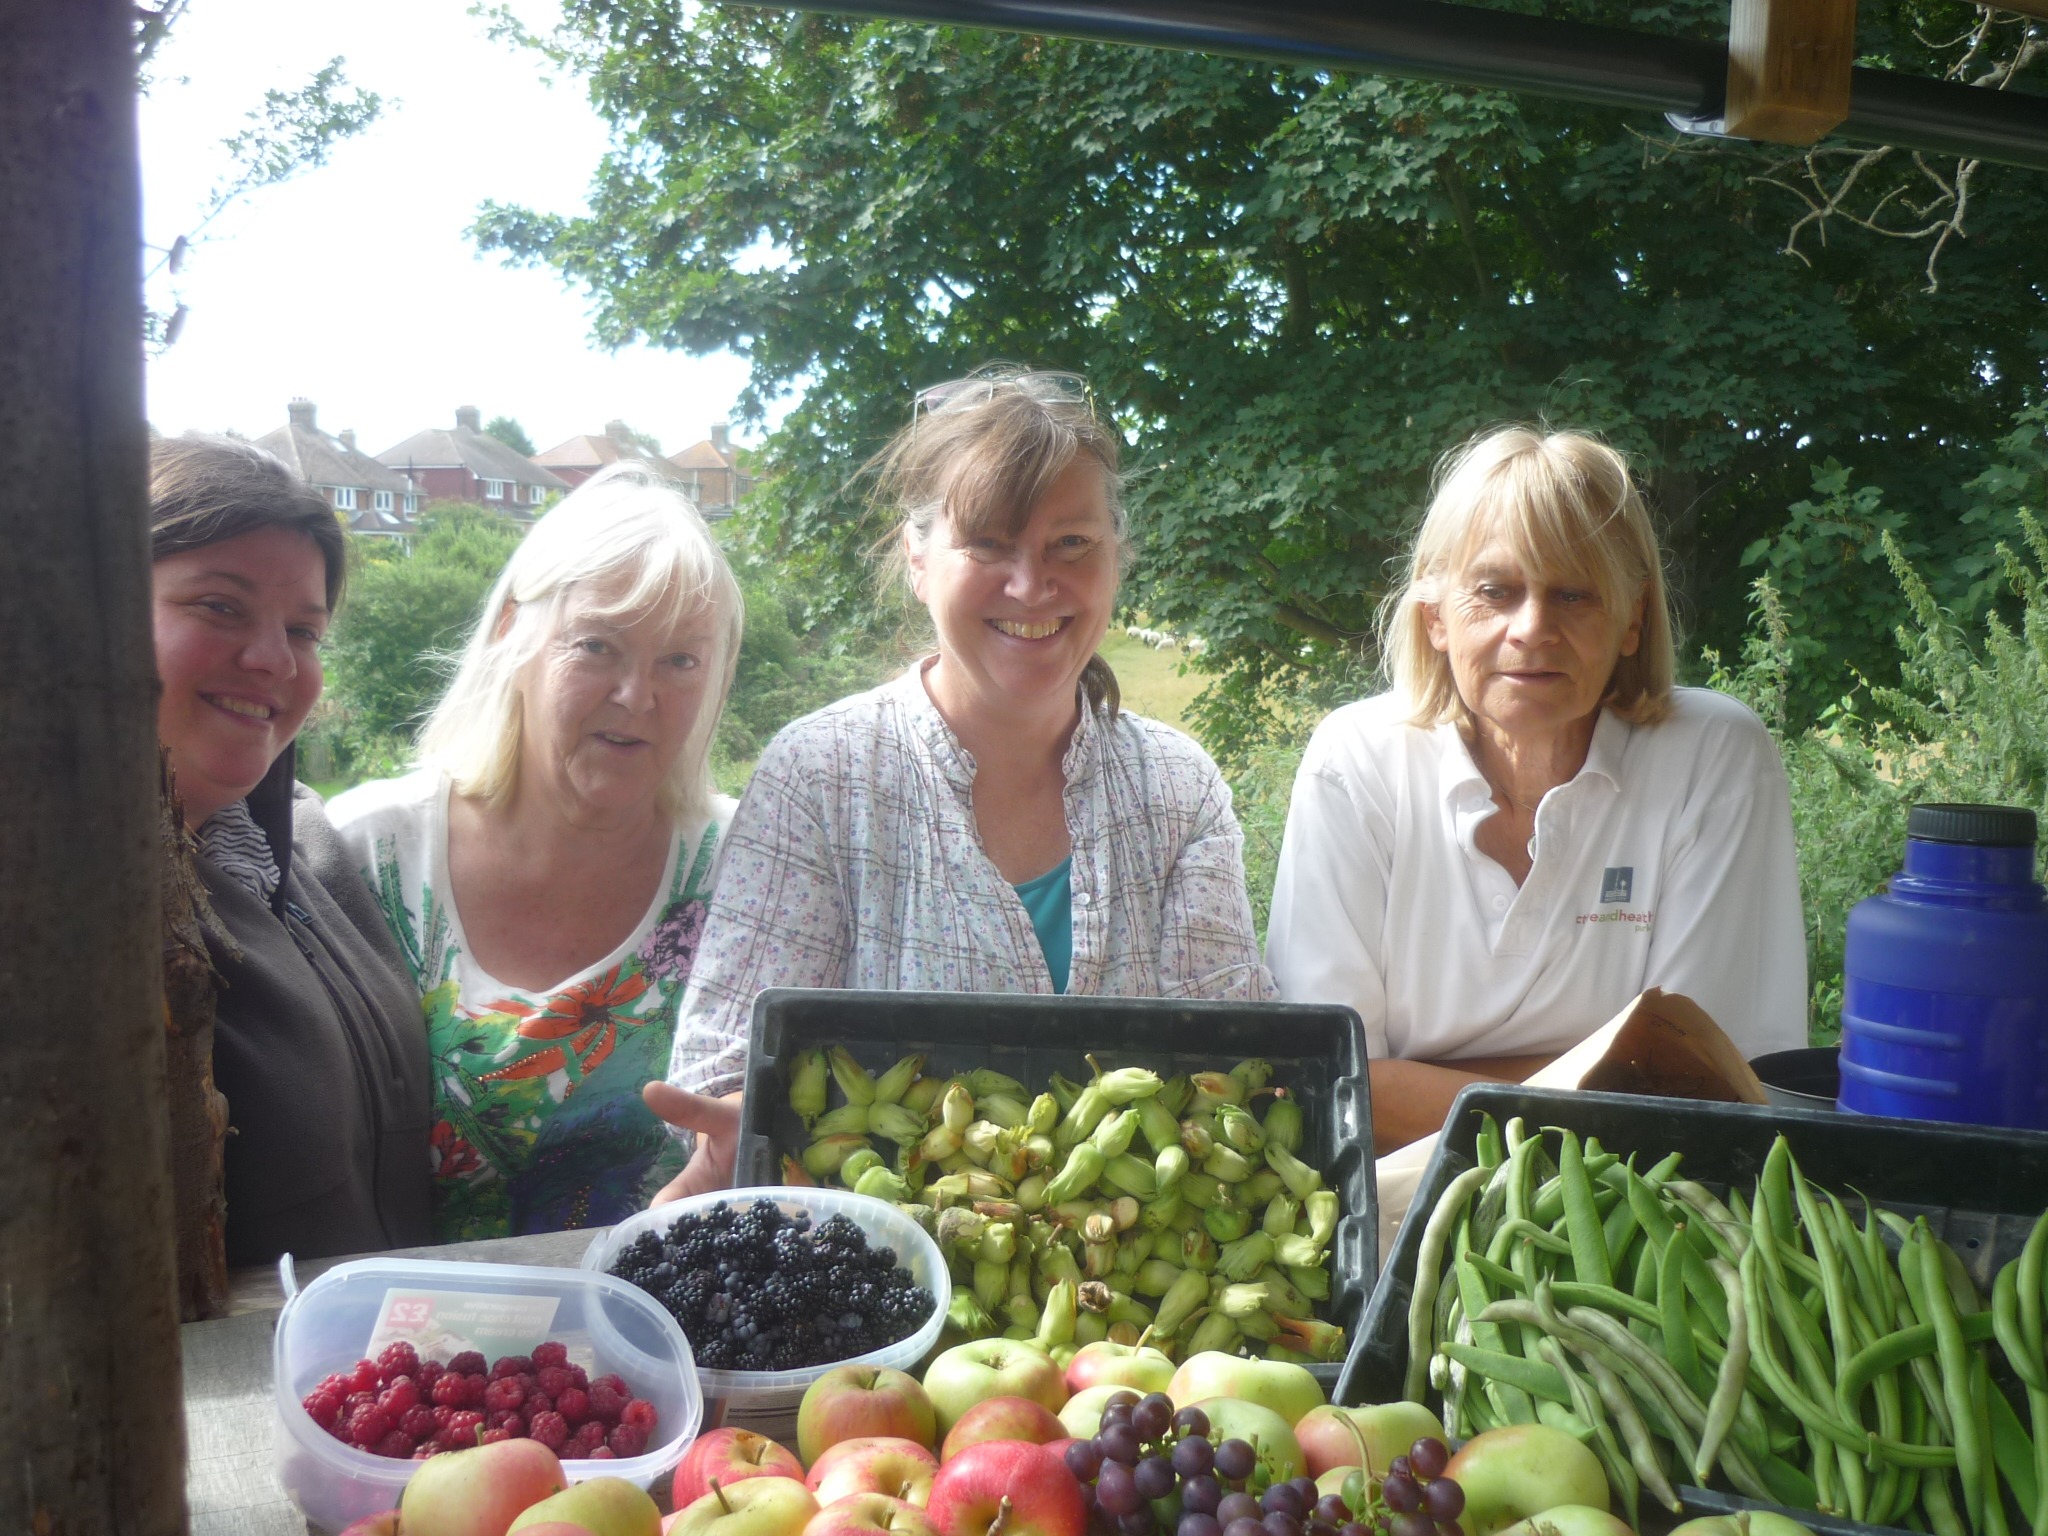 Lewes Community Allotment members with their harvest of fruit and vegetables